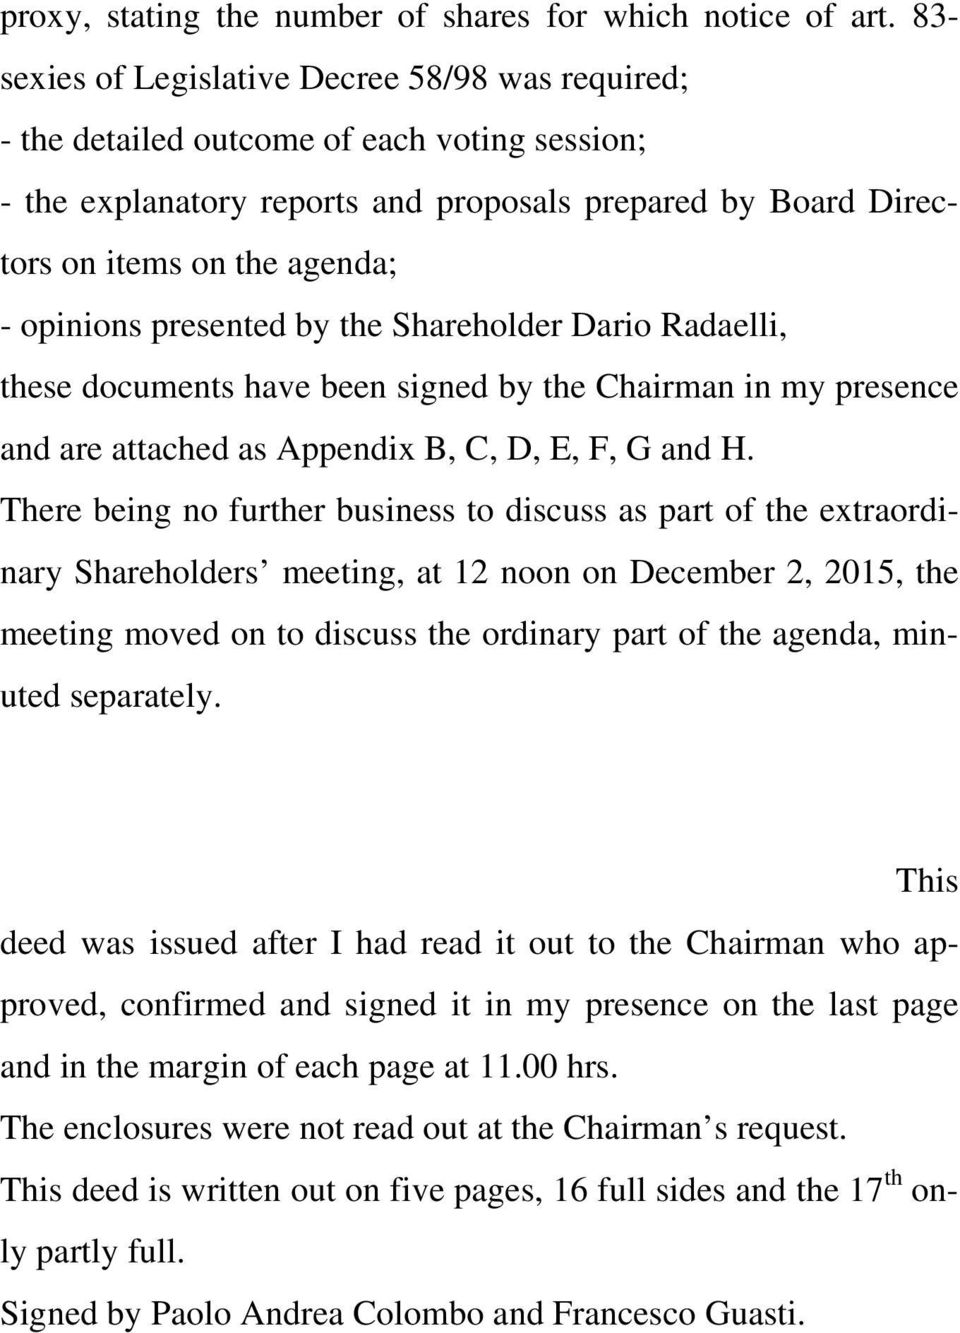 opinions presented by the Shareholder Dario Radaelli, these documents have been signed by the Chairman in my presence and are attached as Appendix B, C, D, E, F, G and H.